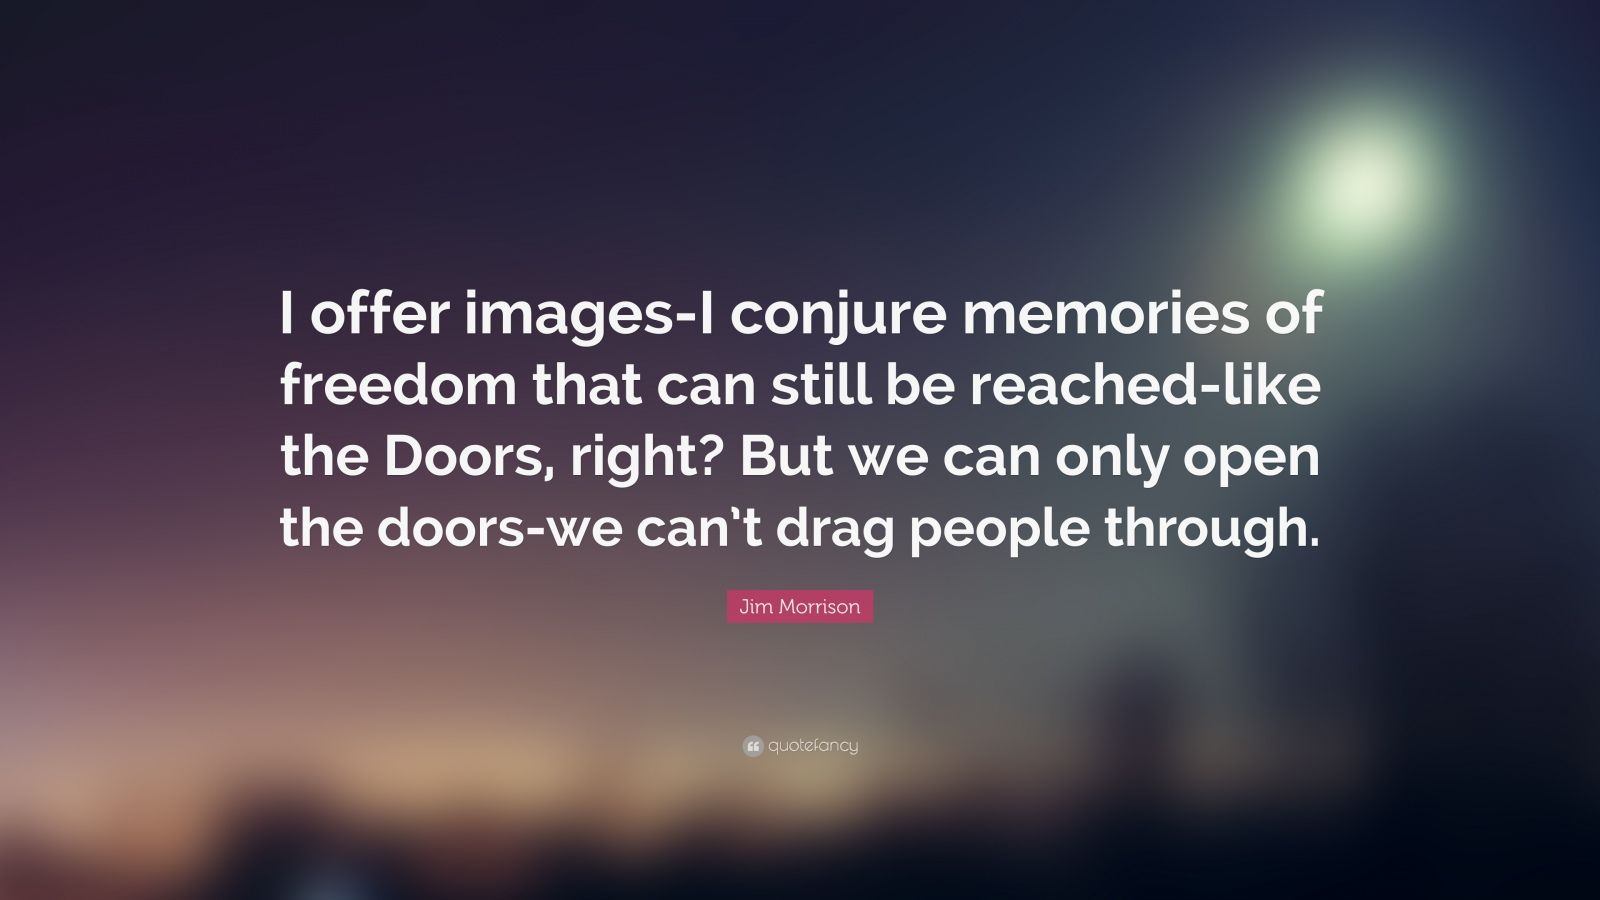 "Jim Morrison Quote: ""I offer images-I conjure memories of freedom that can still be reached-like the Doors, right? But we can only open the doors-we can't drag people through."""